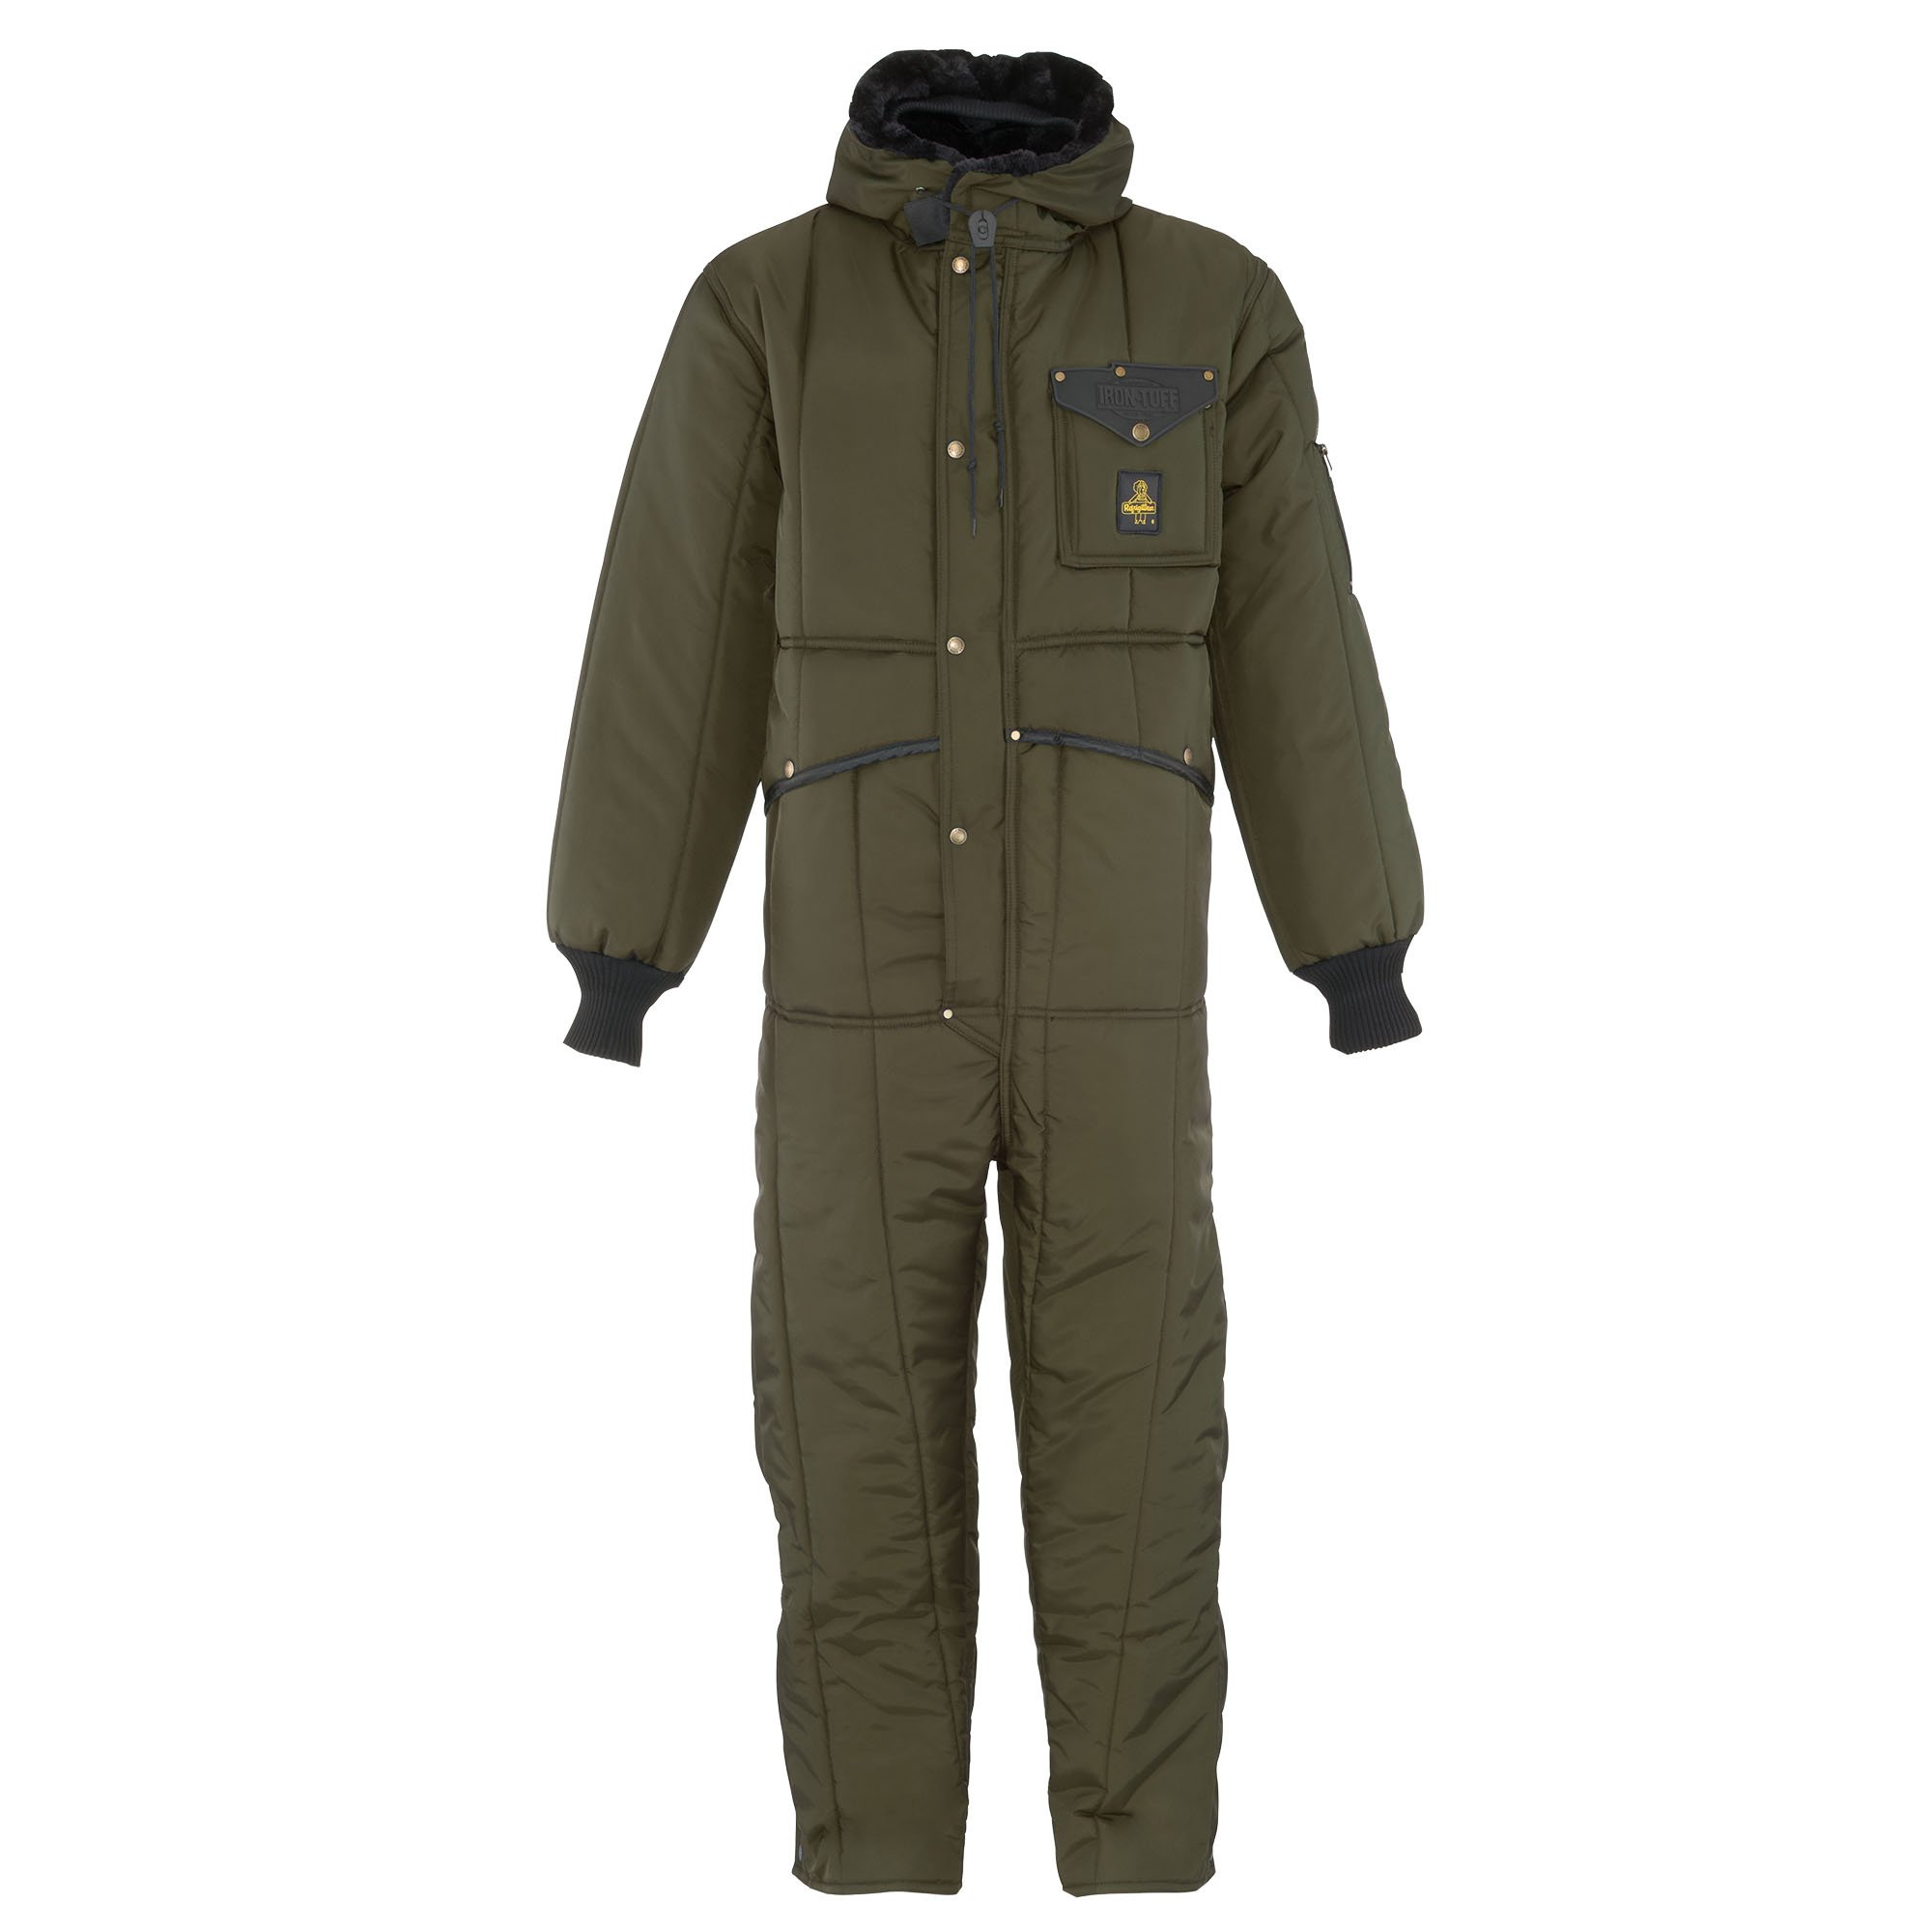 RefrigiWear Men's Iron-Tuff Insulated Coveralls with Hood -50F Extreme Cold Suit (Sage Green, Large)